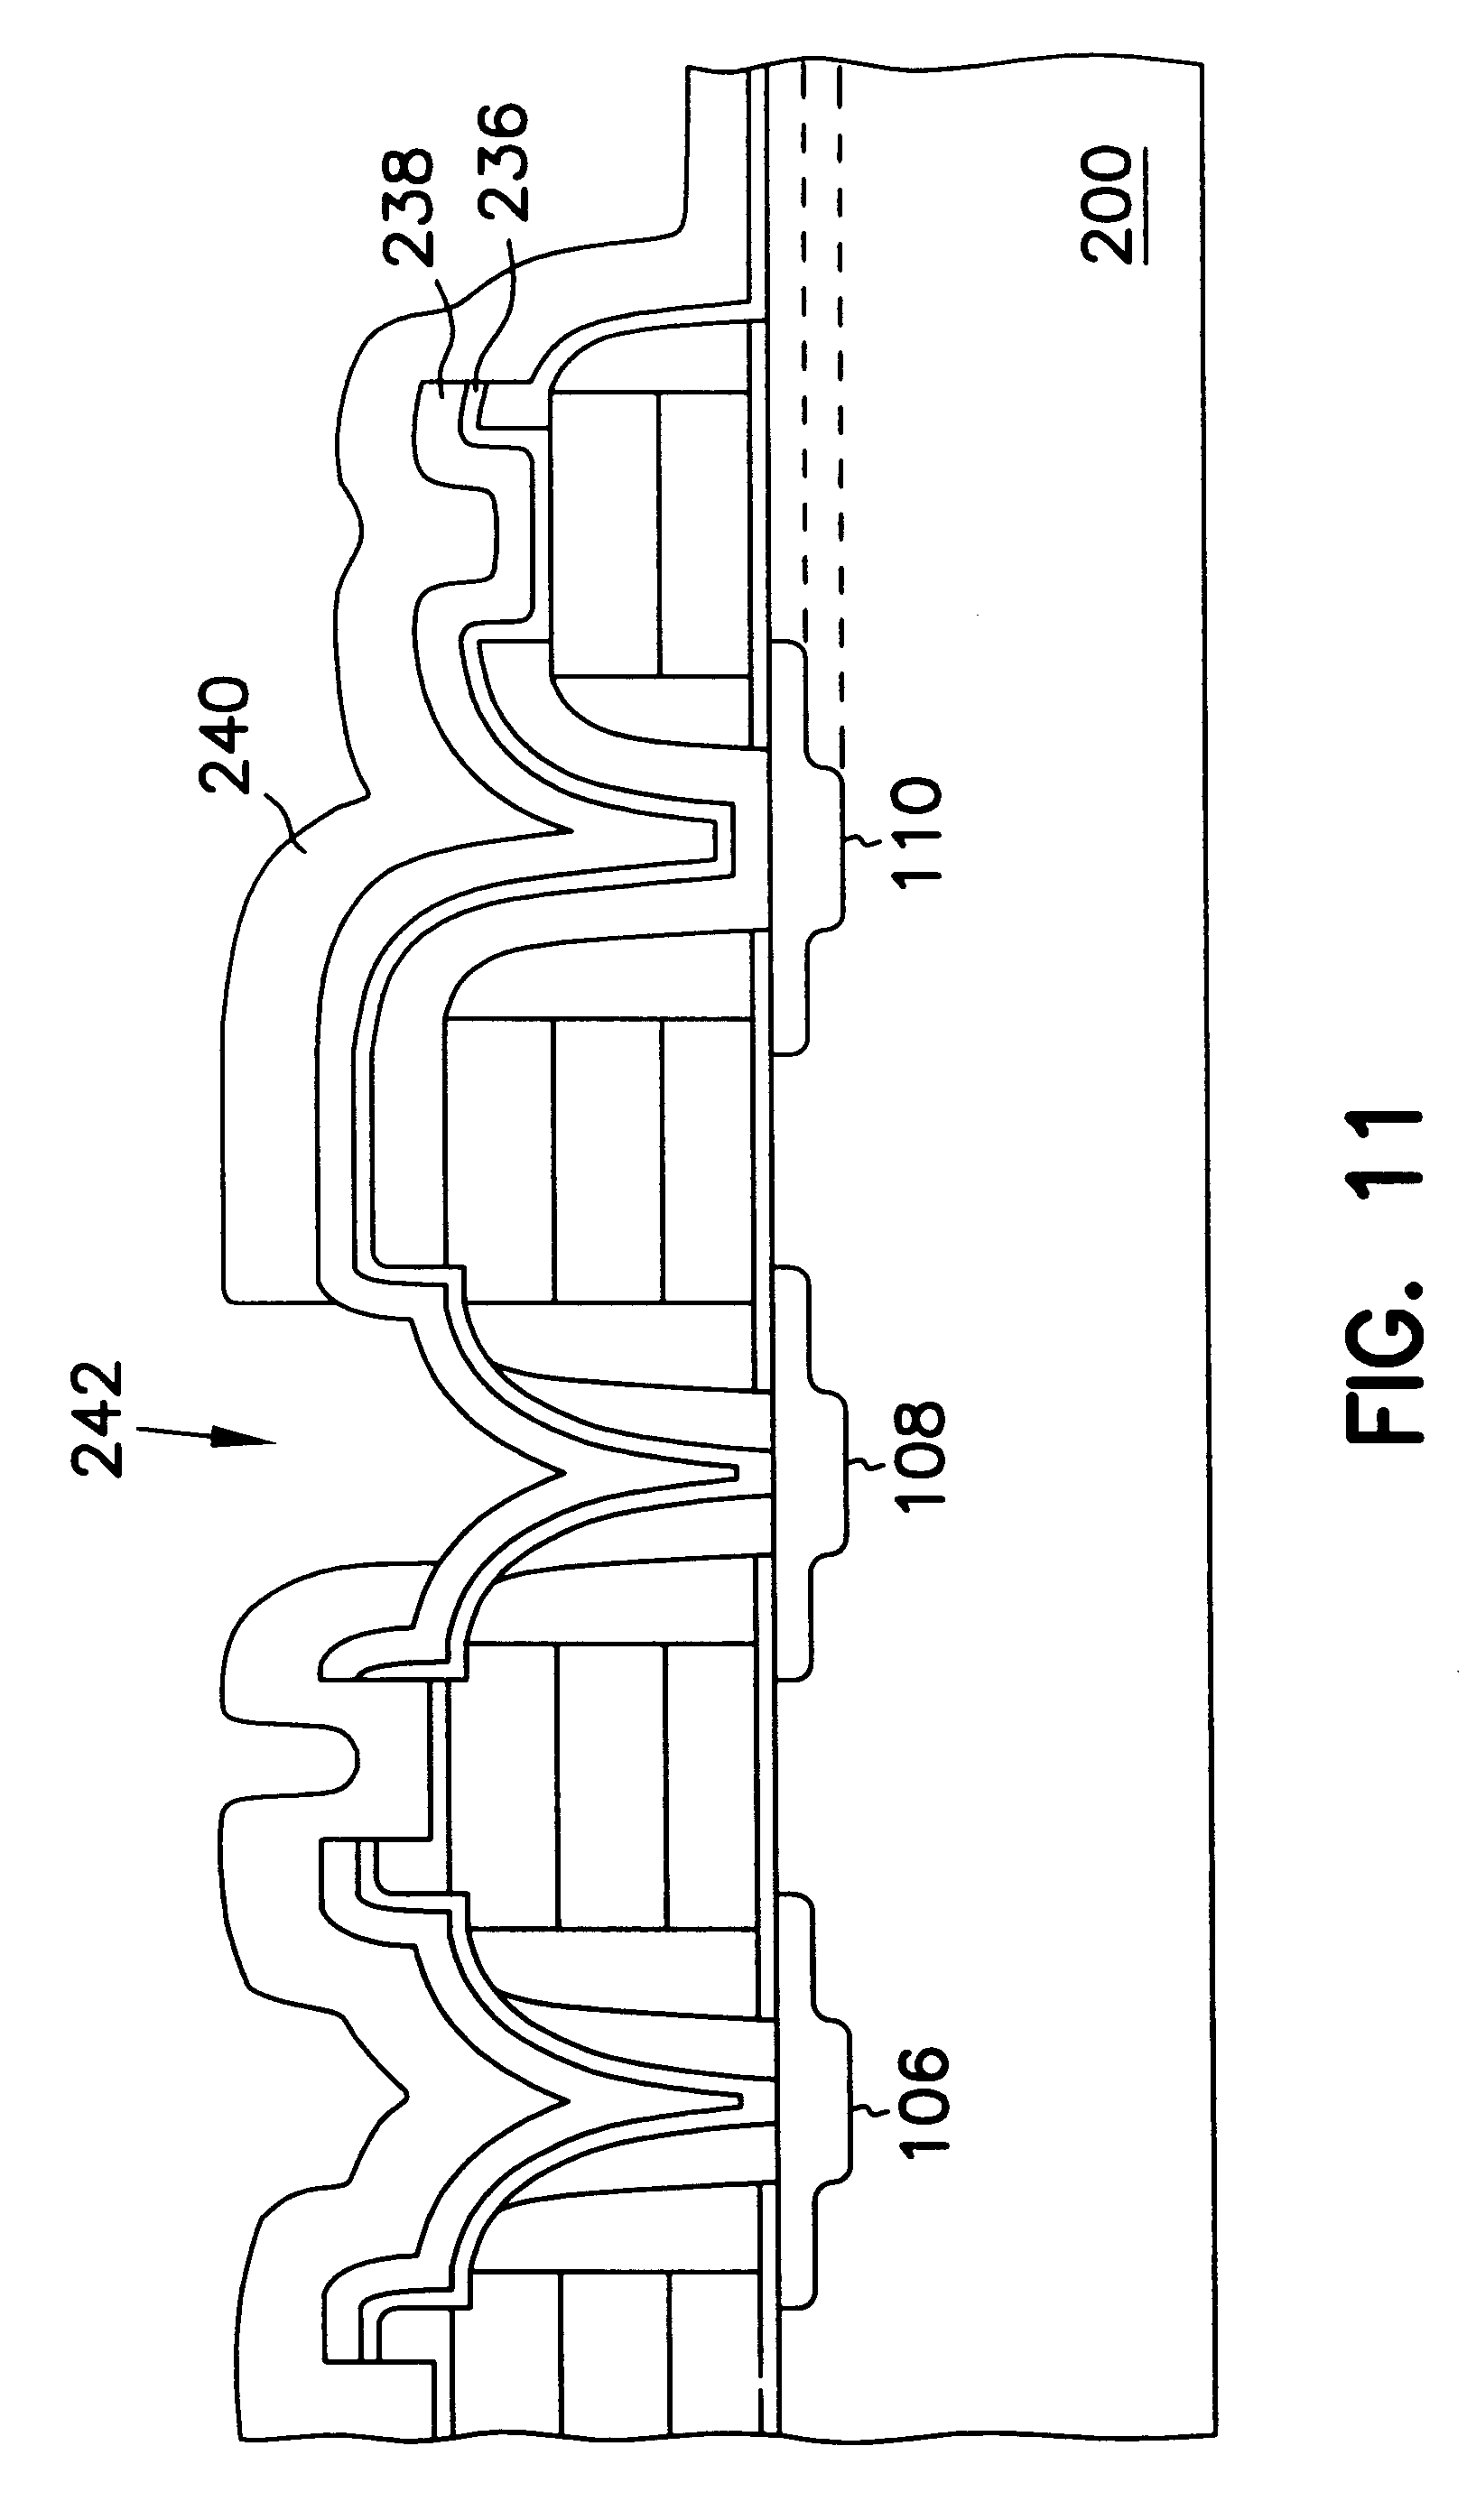 patent us6174764 - process for manufacturing integrated circuit sram